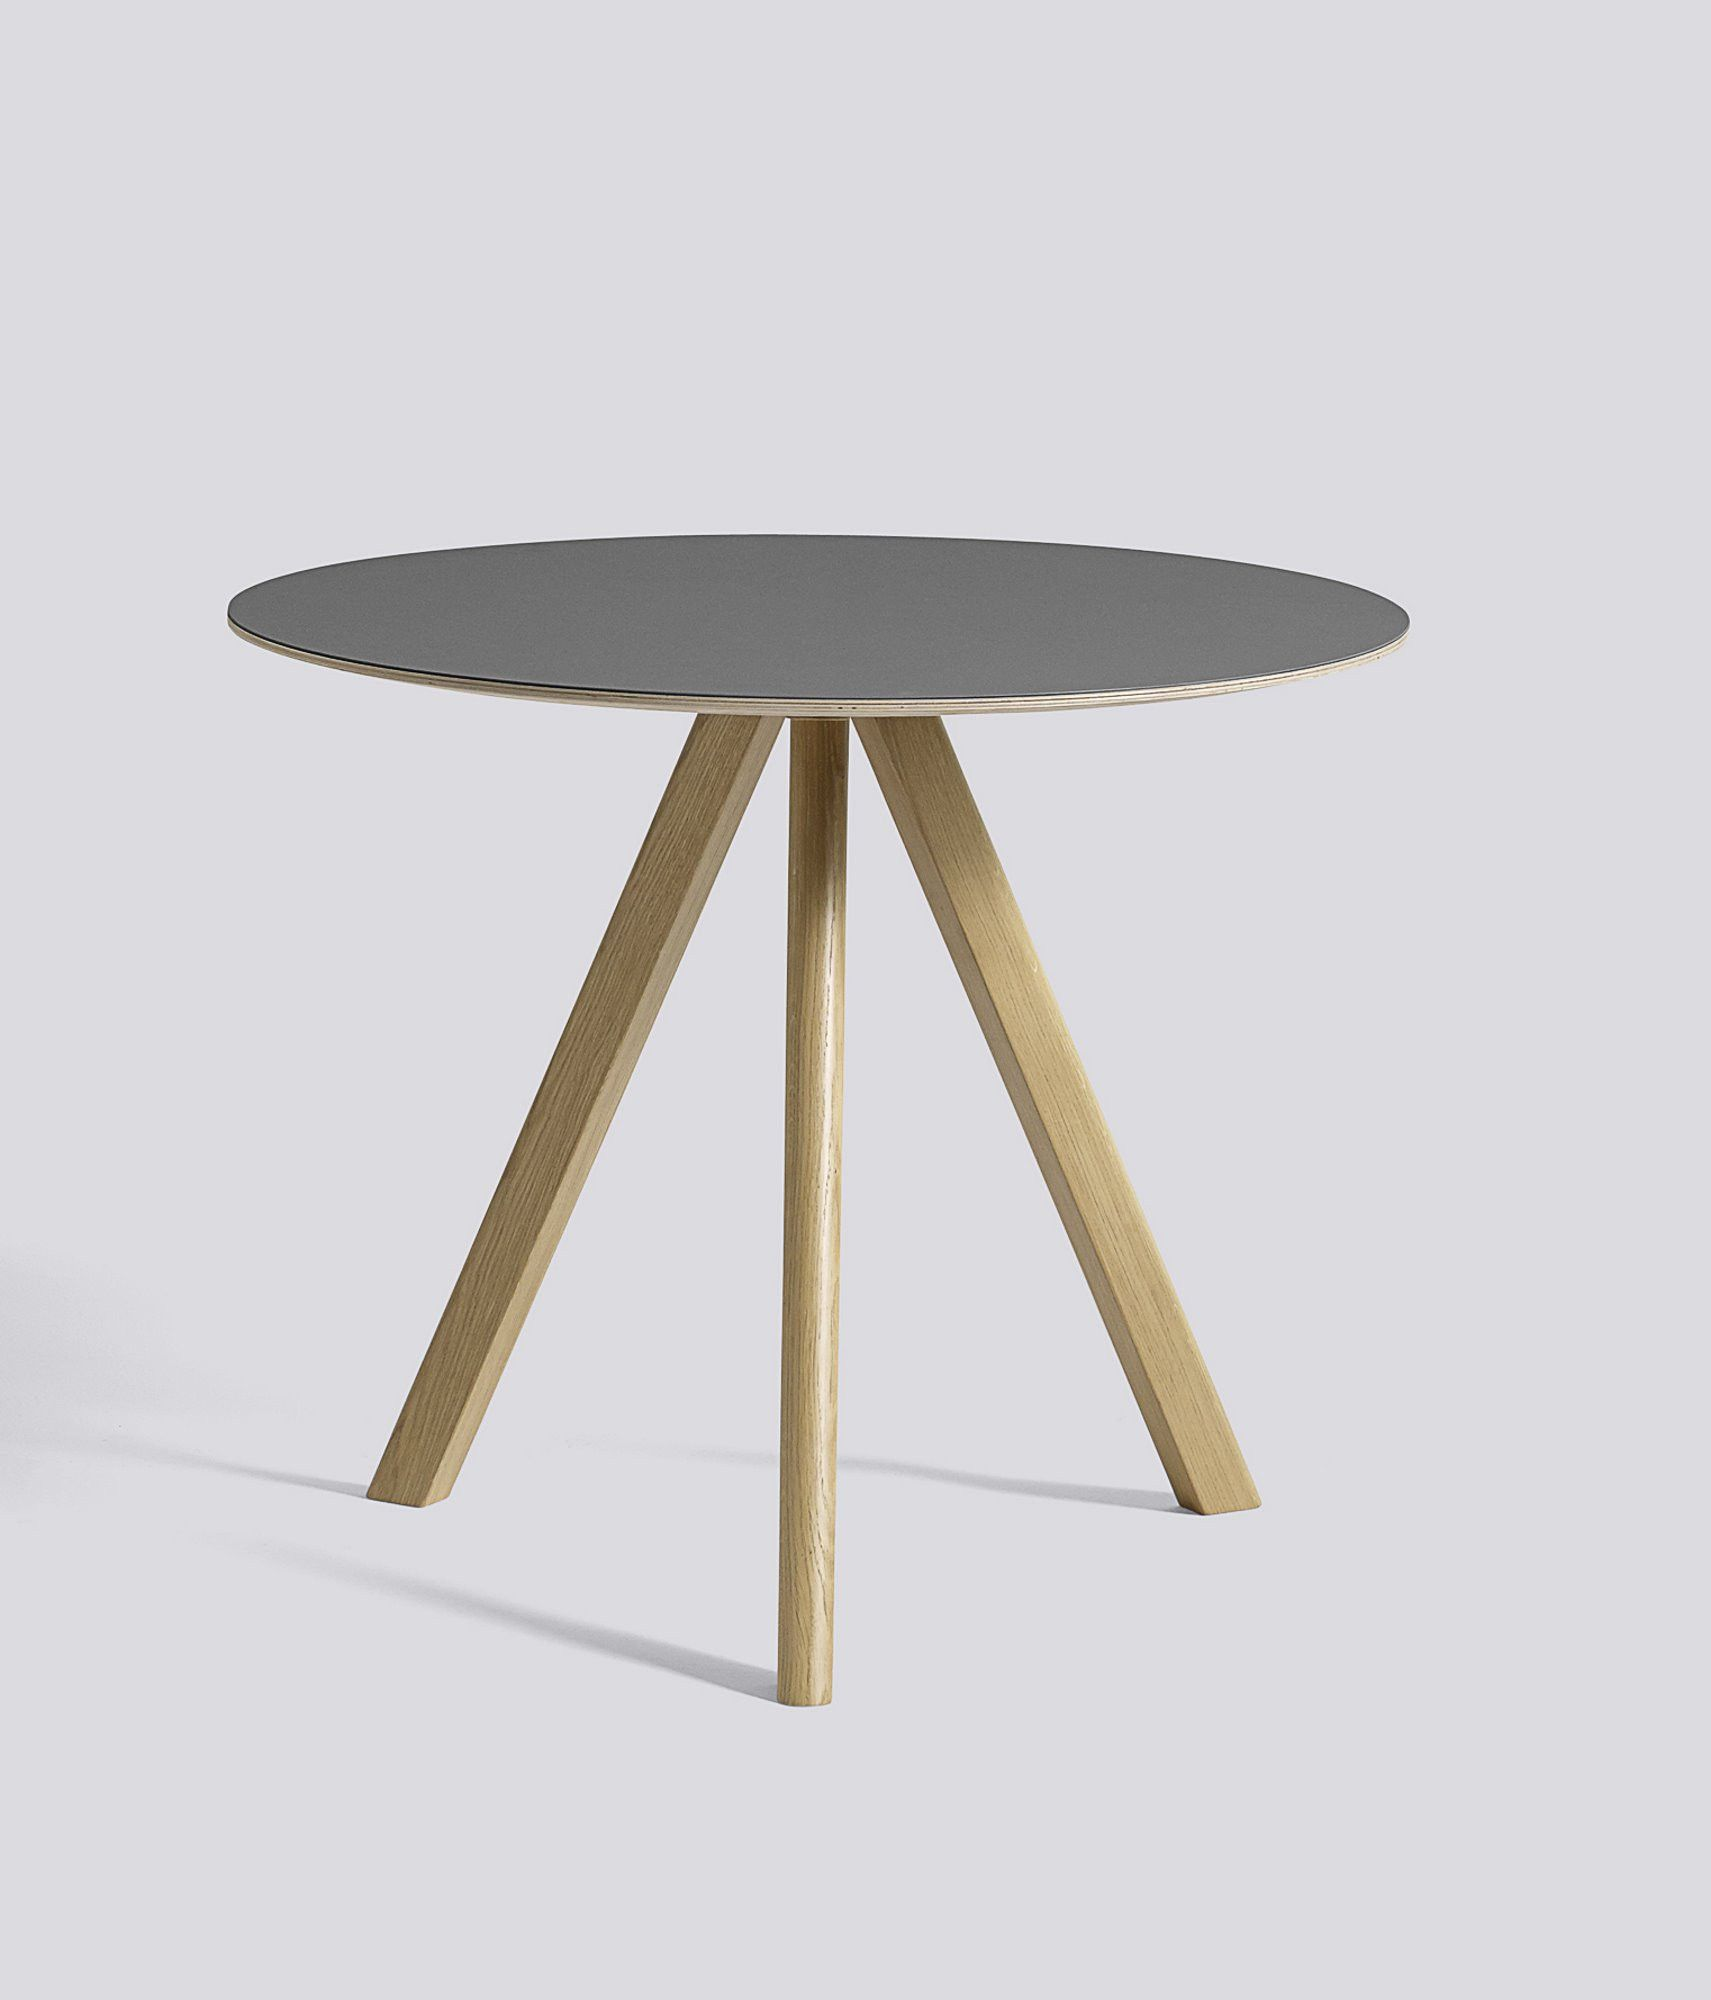 Copenhague Table Round Cph20 Tisch Rund Hay Furniture Table